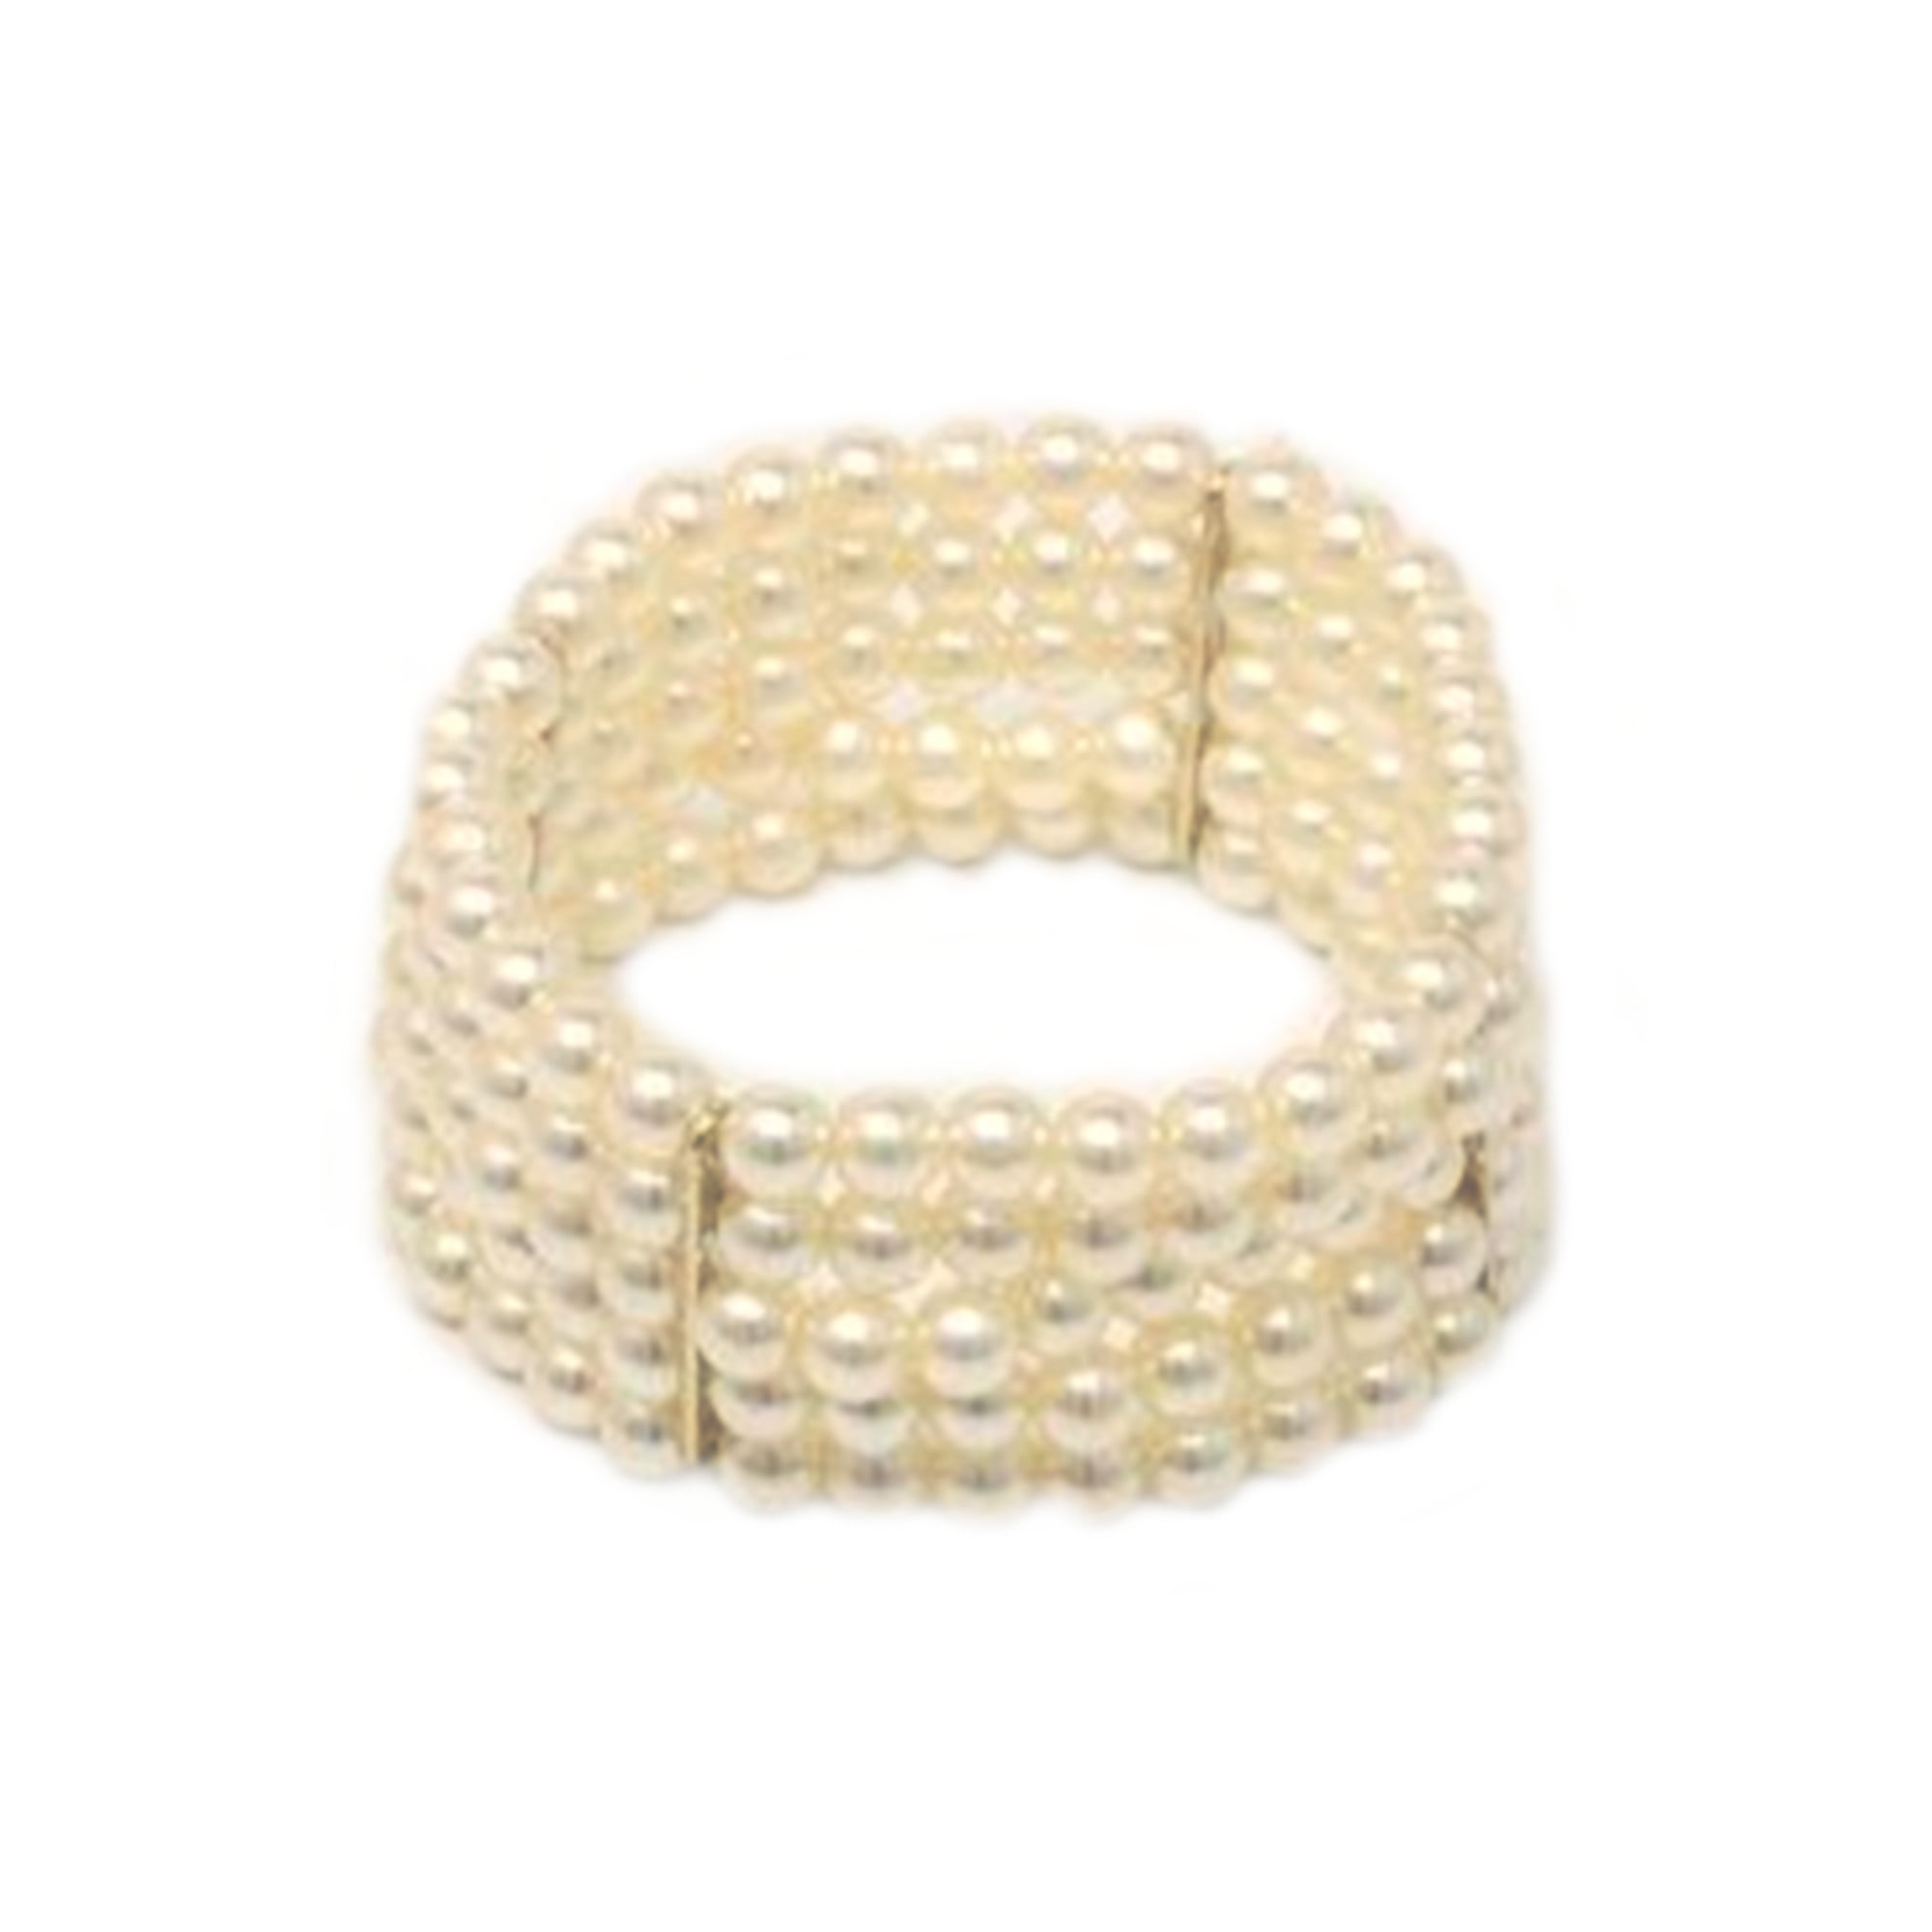 Pearl bead, 5 row stretch cuff bracelet.